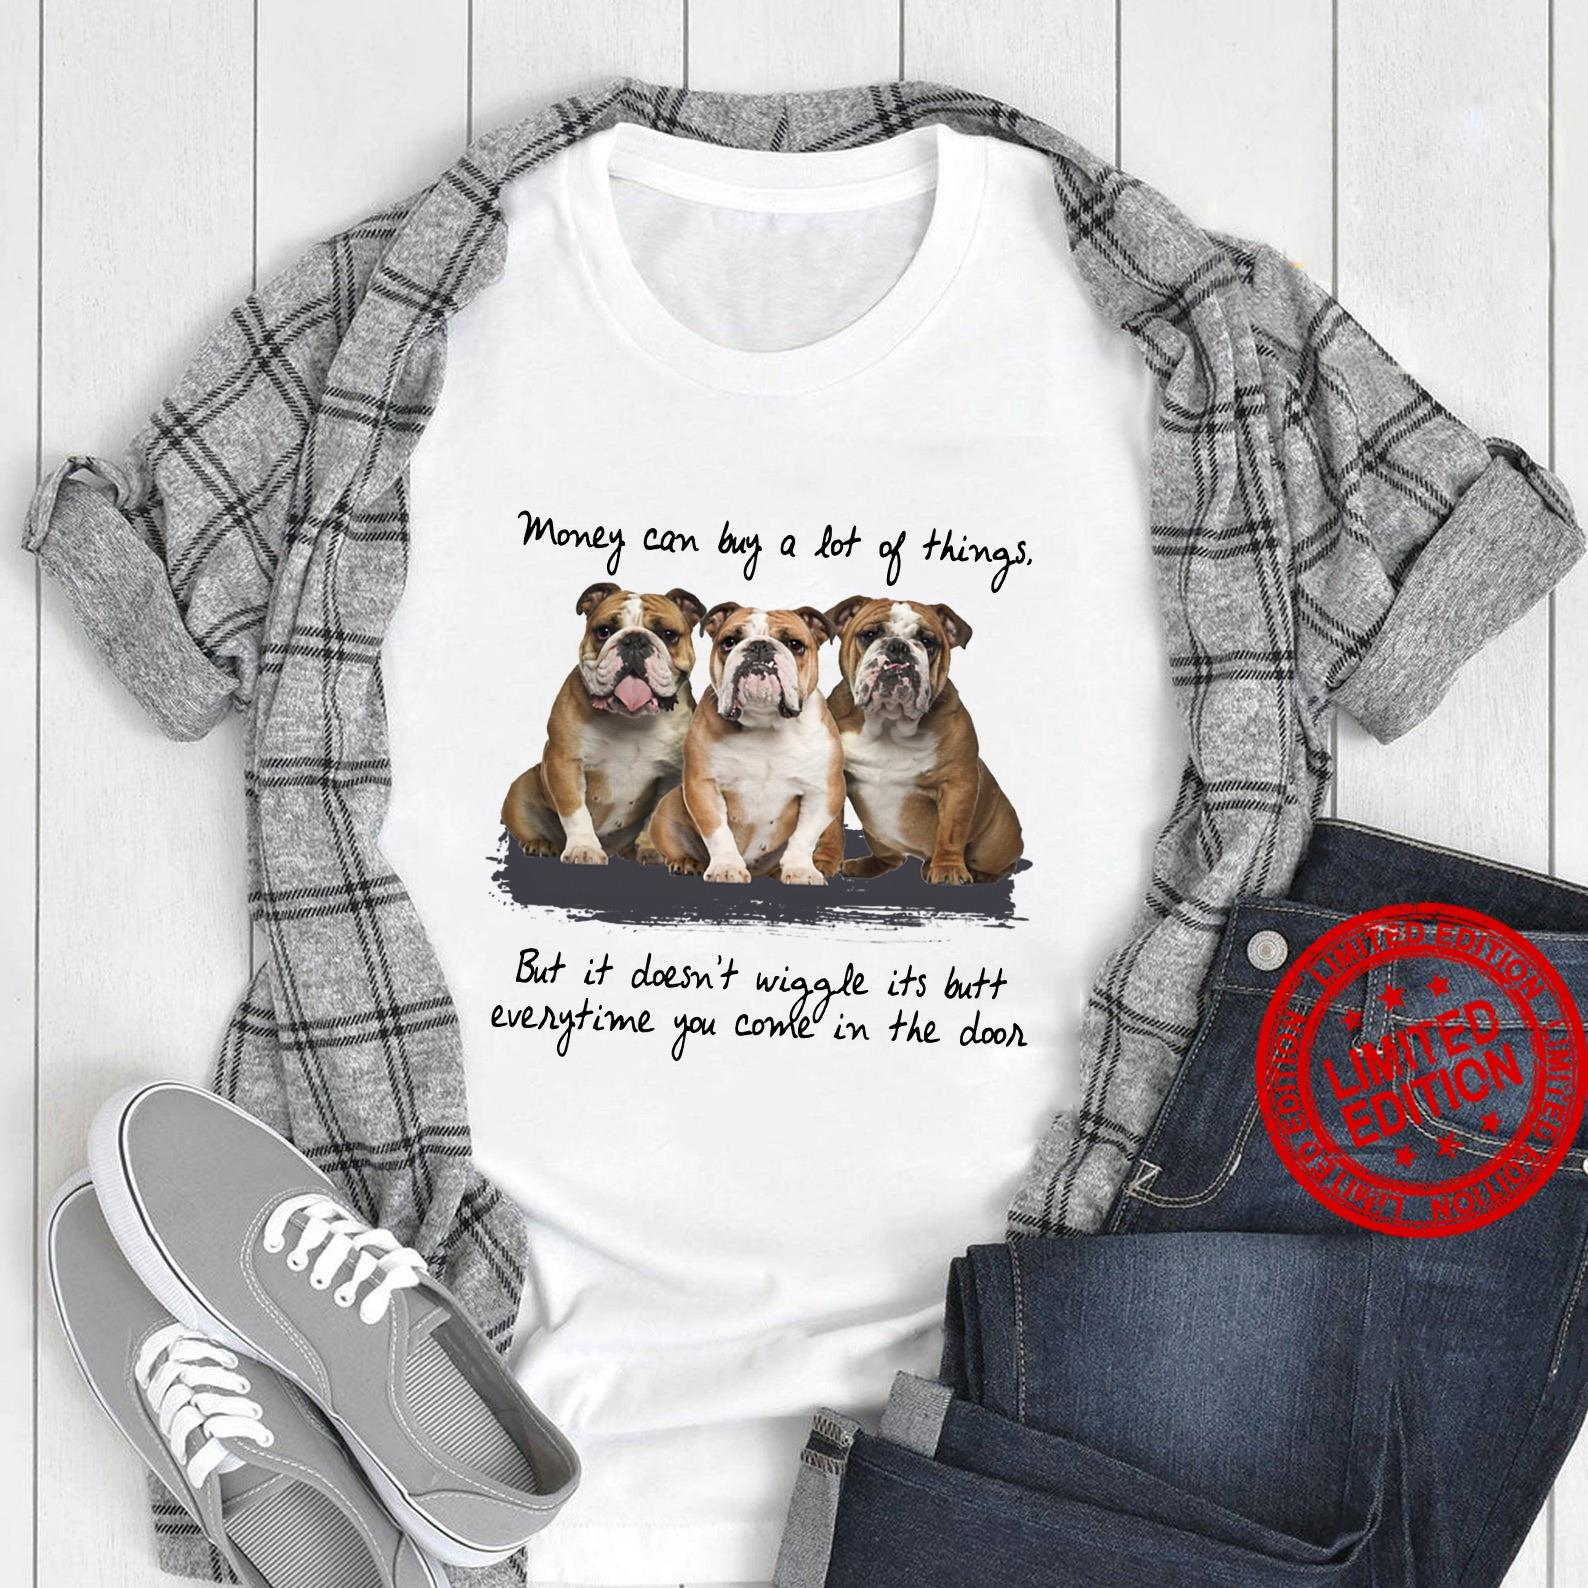 Money Can Buy A Lot Of Things But It Doesn't Wiggle Its Butt Eveytime You Come In The Door Shirt